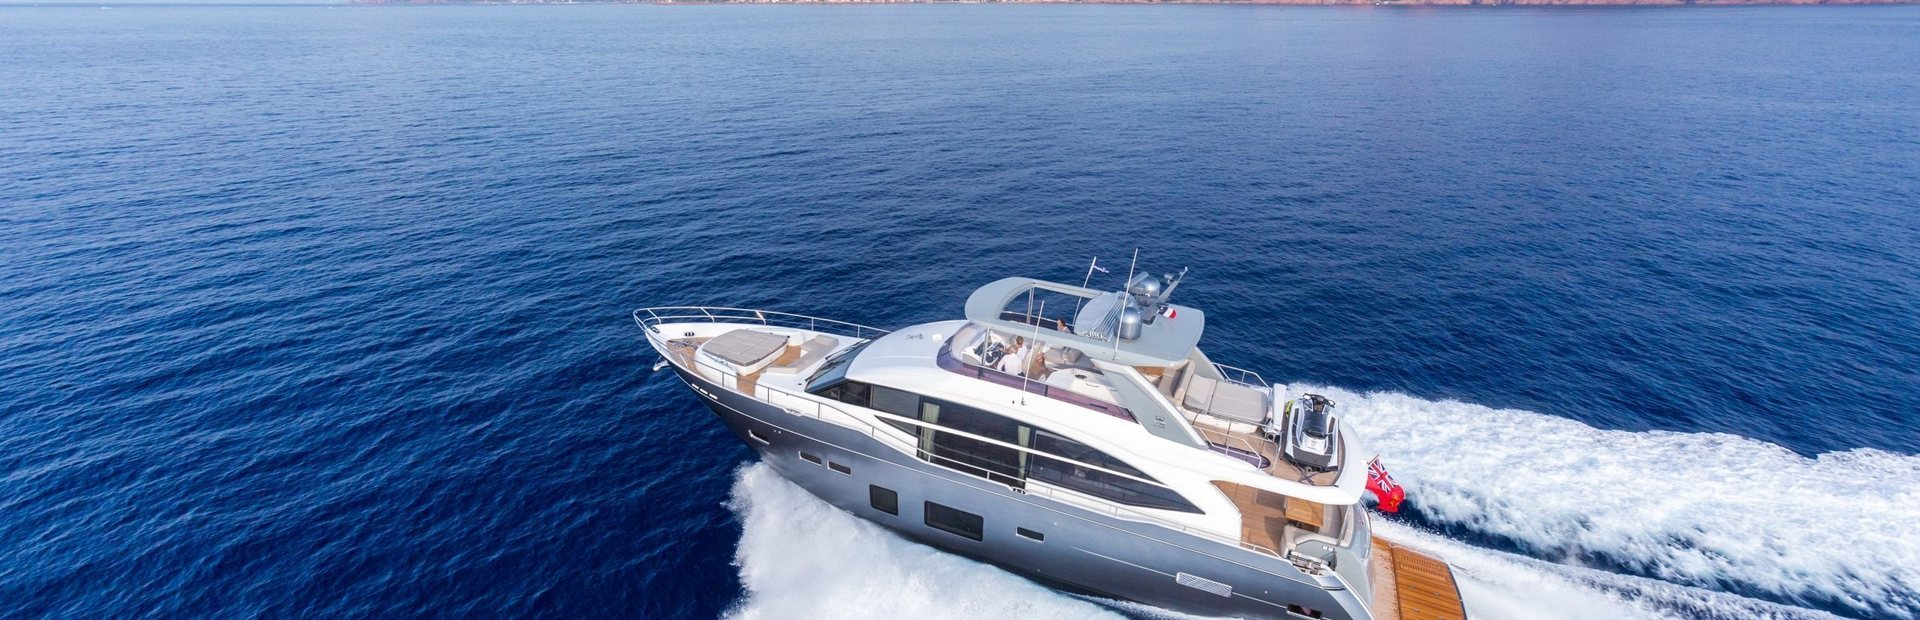 Princess Y75  Yacht Charter